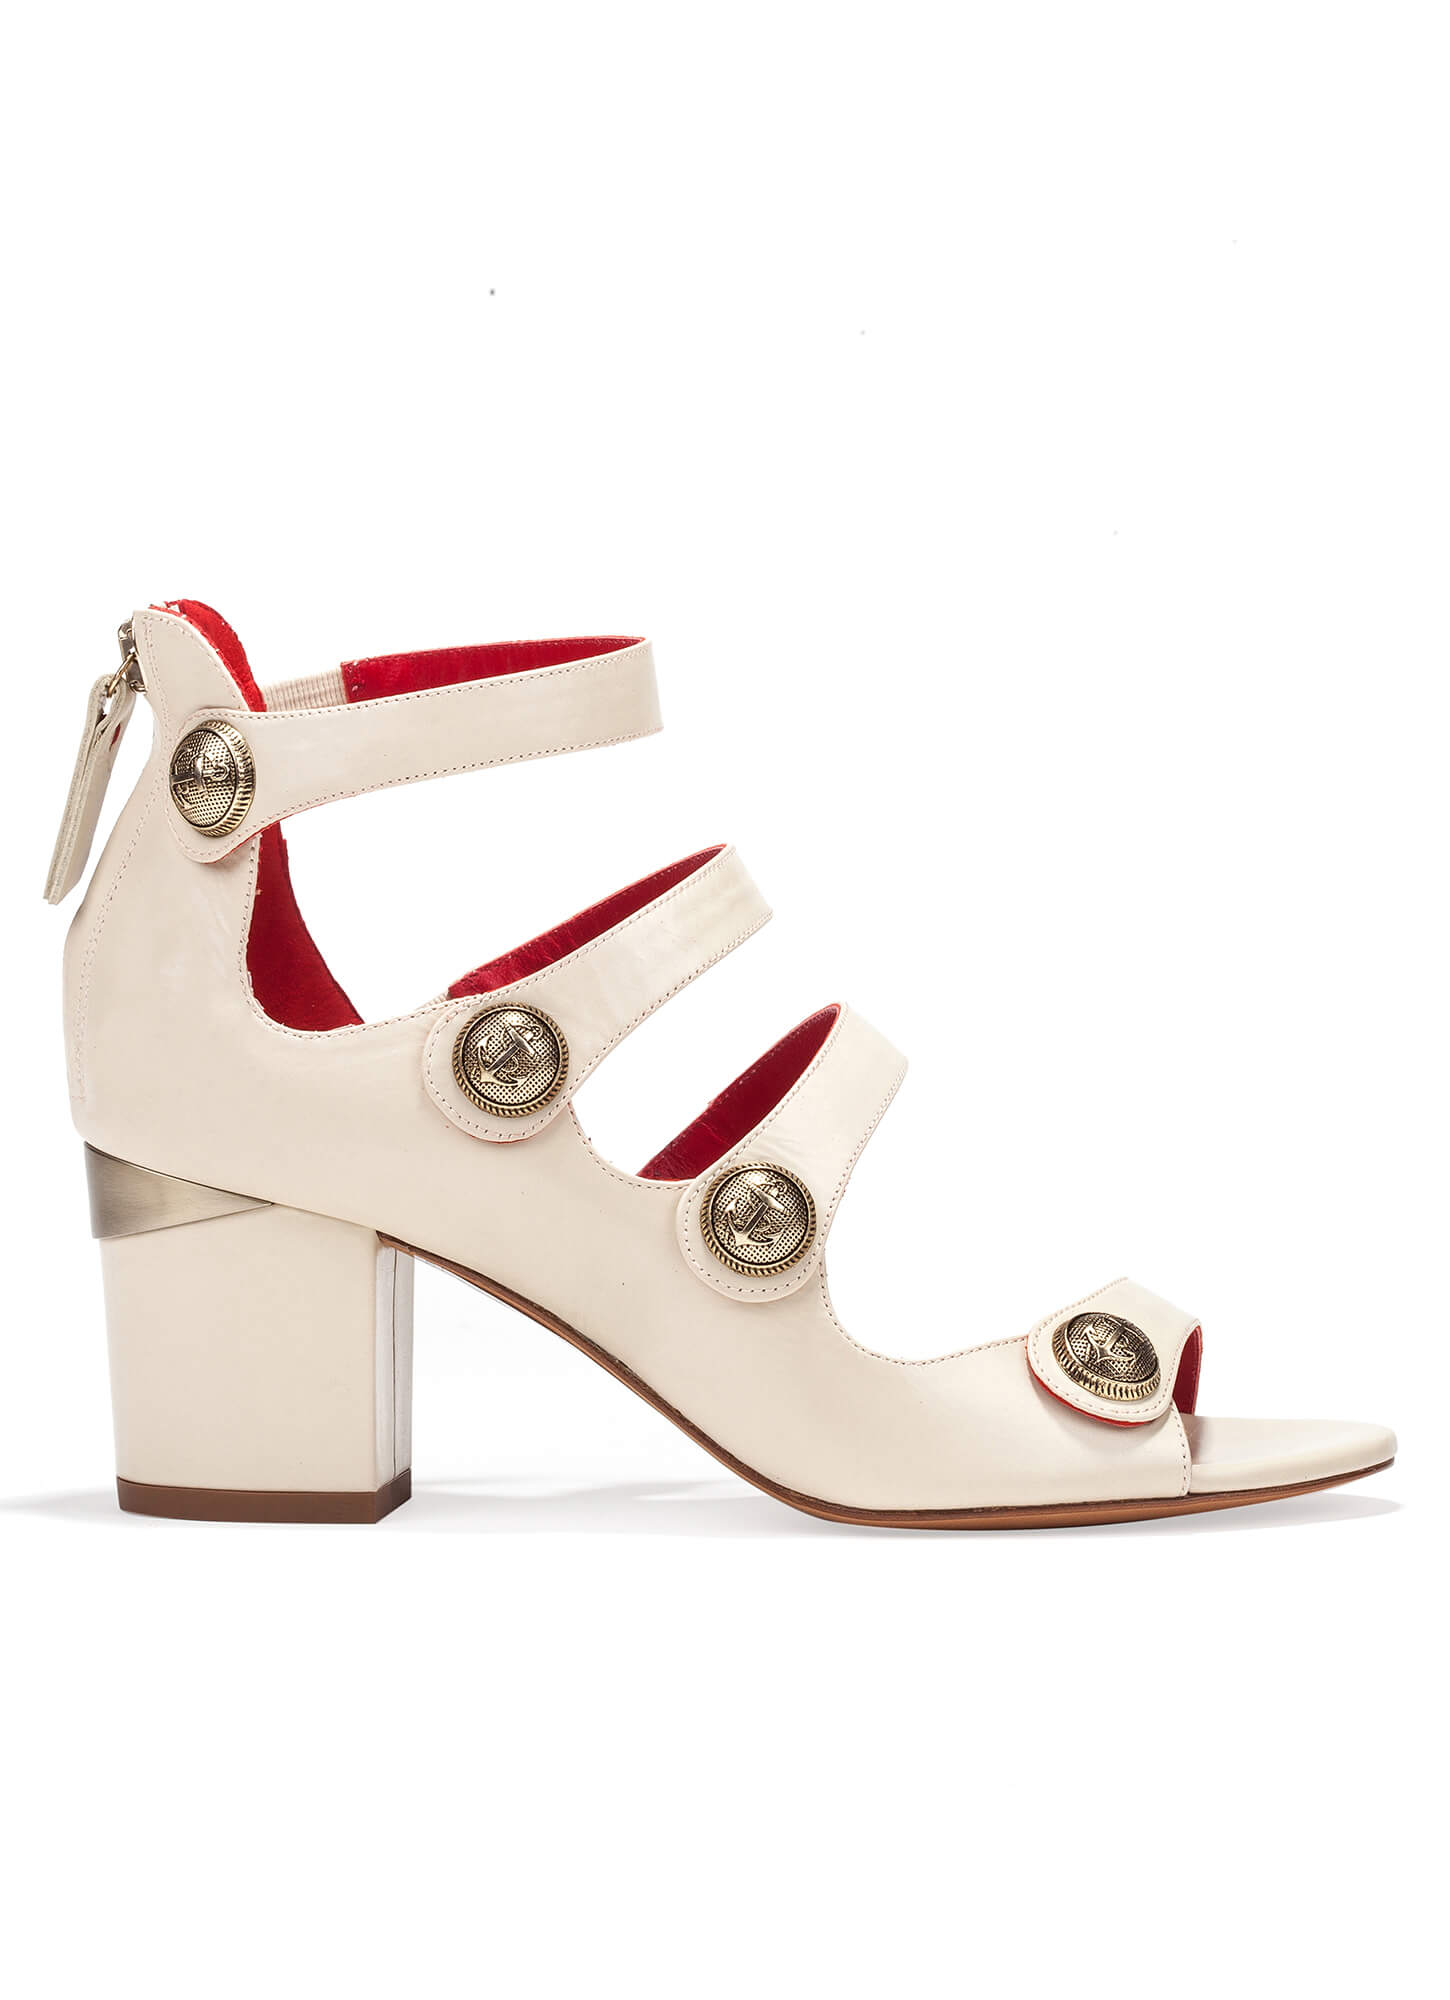 419c7ee2a566 Mid block heel sandals in cream leather with metallic buttons Mid heel  sandals with metal buttons - online shoe store Pura Lopez Kimber Pura López  ...